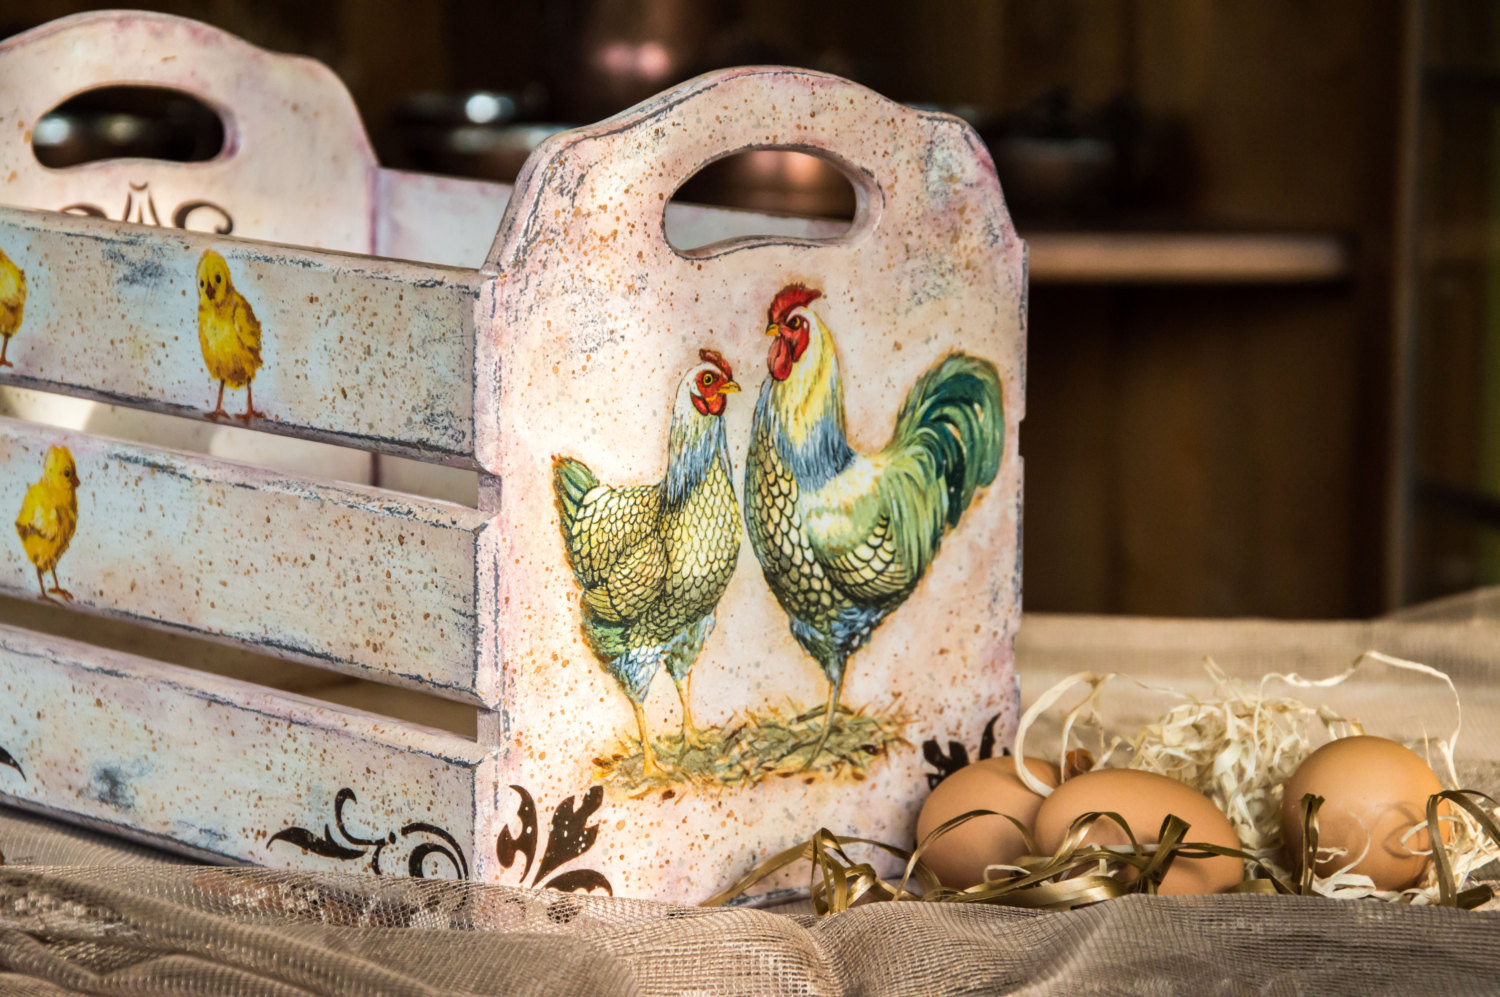 Best ideas about Rooster Kitchen Decor . Save or Pin Farmhouse Decor Rooster Kitchen Decor Country Rooster Now.